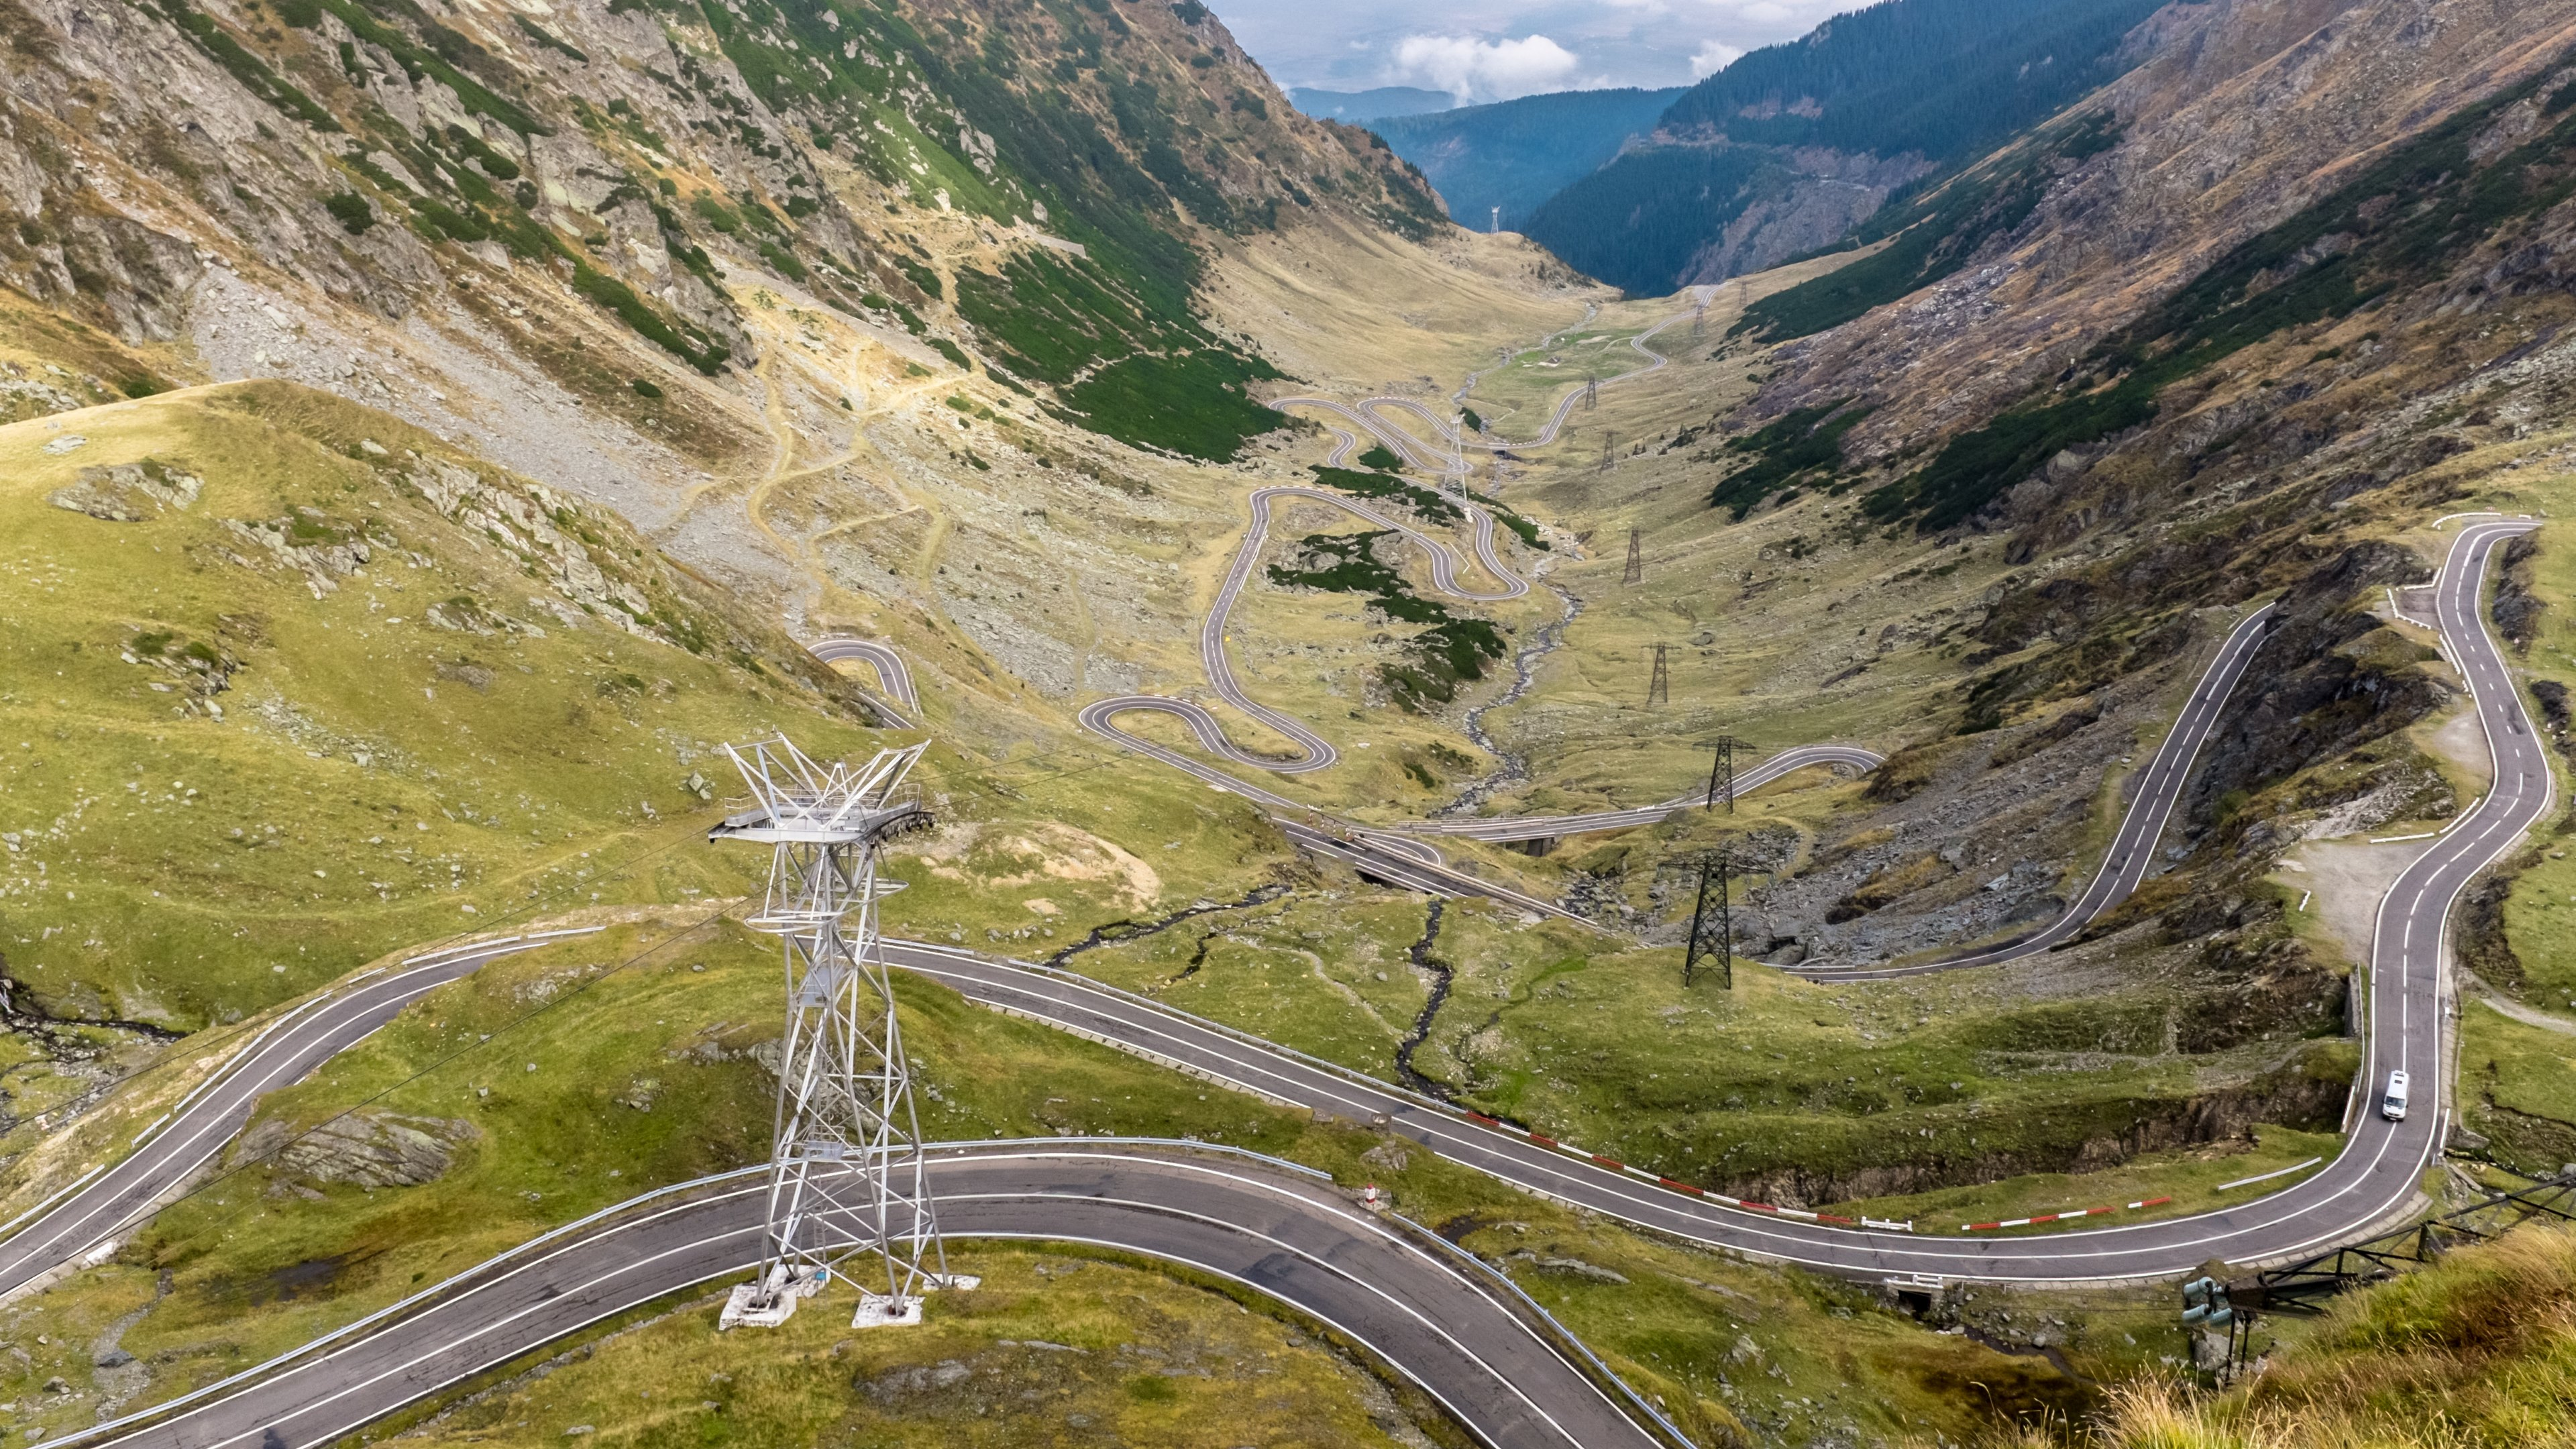 Travel on the Transfagarasan Road in Romania HD